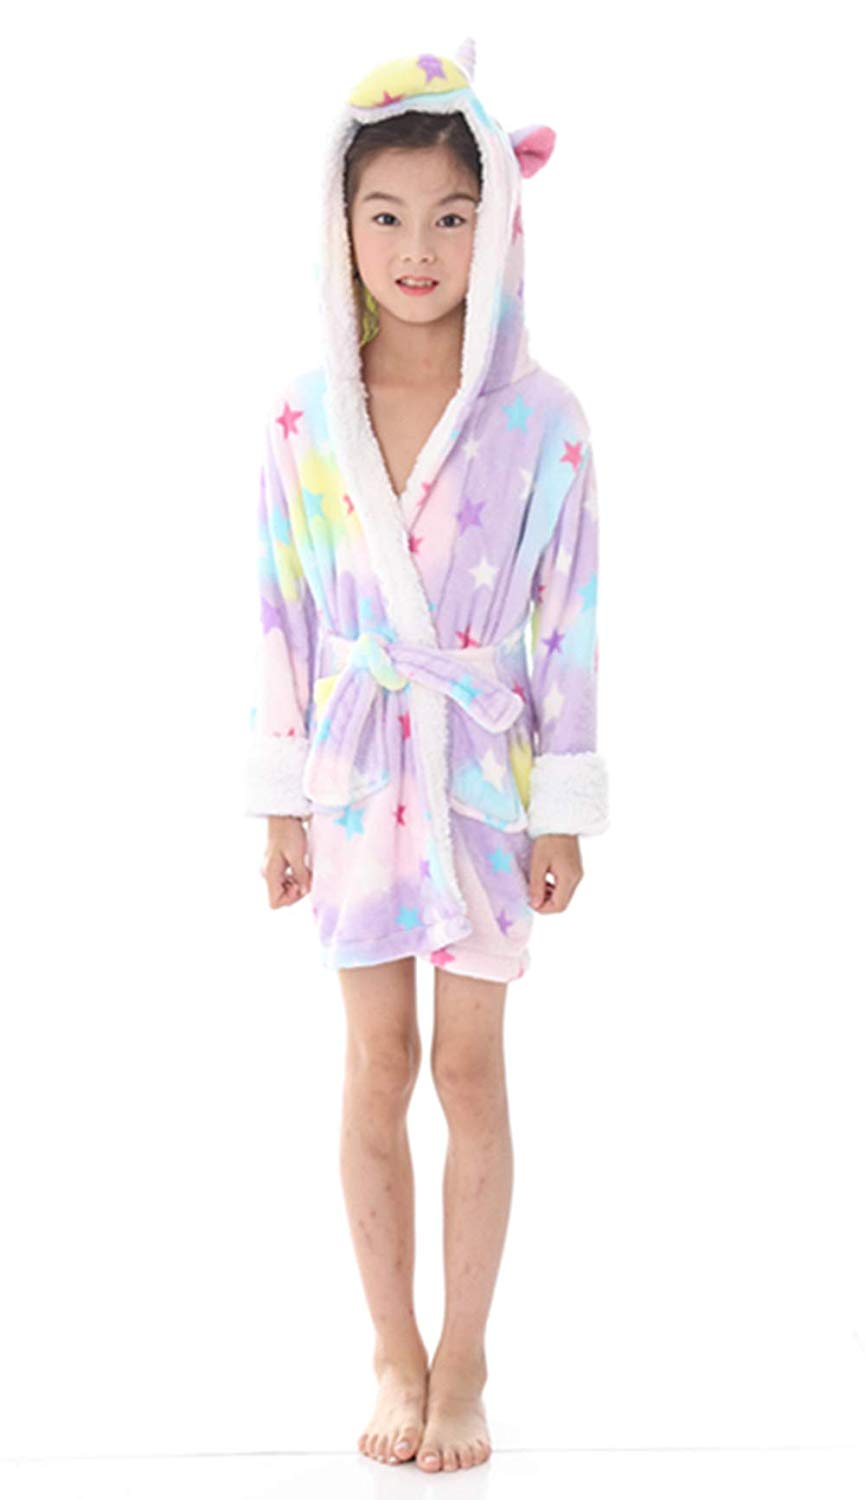 727243dab1 Get Quotations · Kids Bathrobe Unicorn Pajamas Sleepwear Boys Girls Hooded Robe  Loungewear